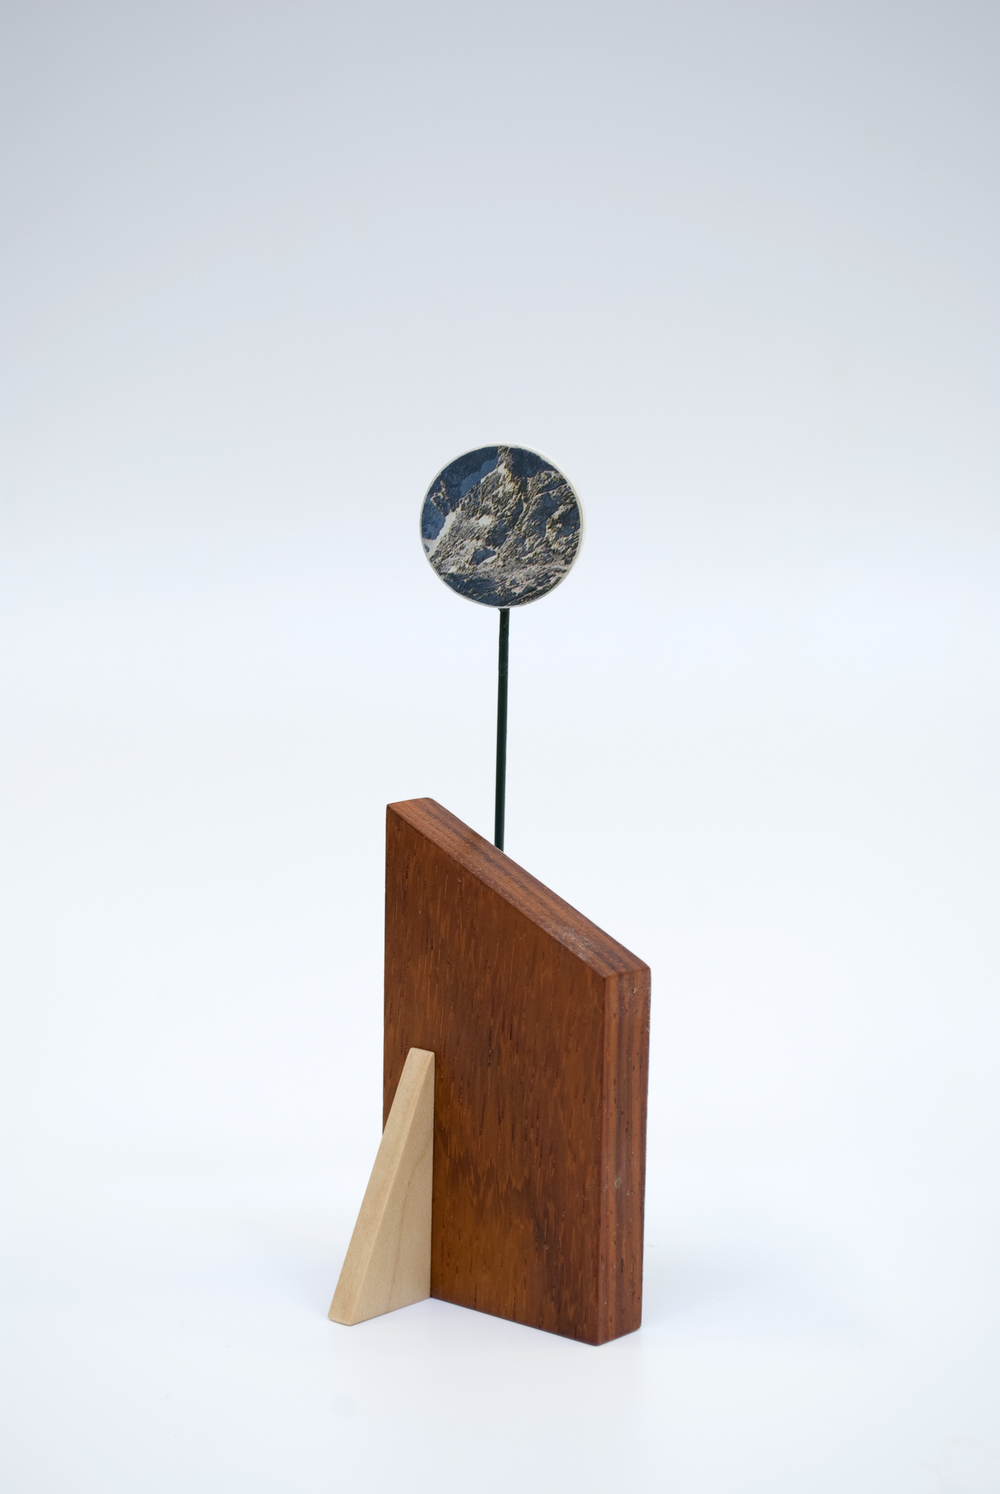 Maquette 12 , 2015  5 x 2 x 1.5 inches  Wood, paint, found image